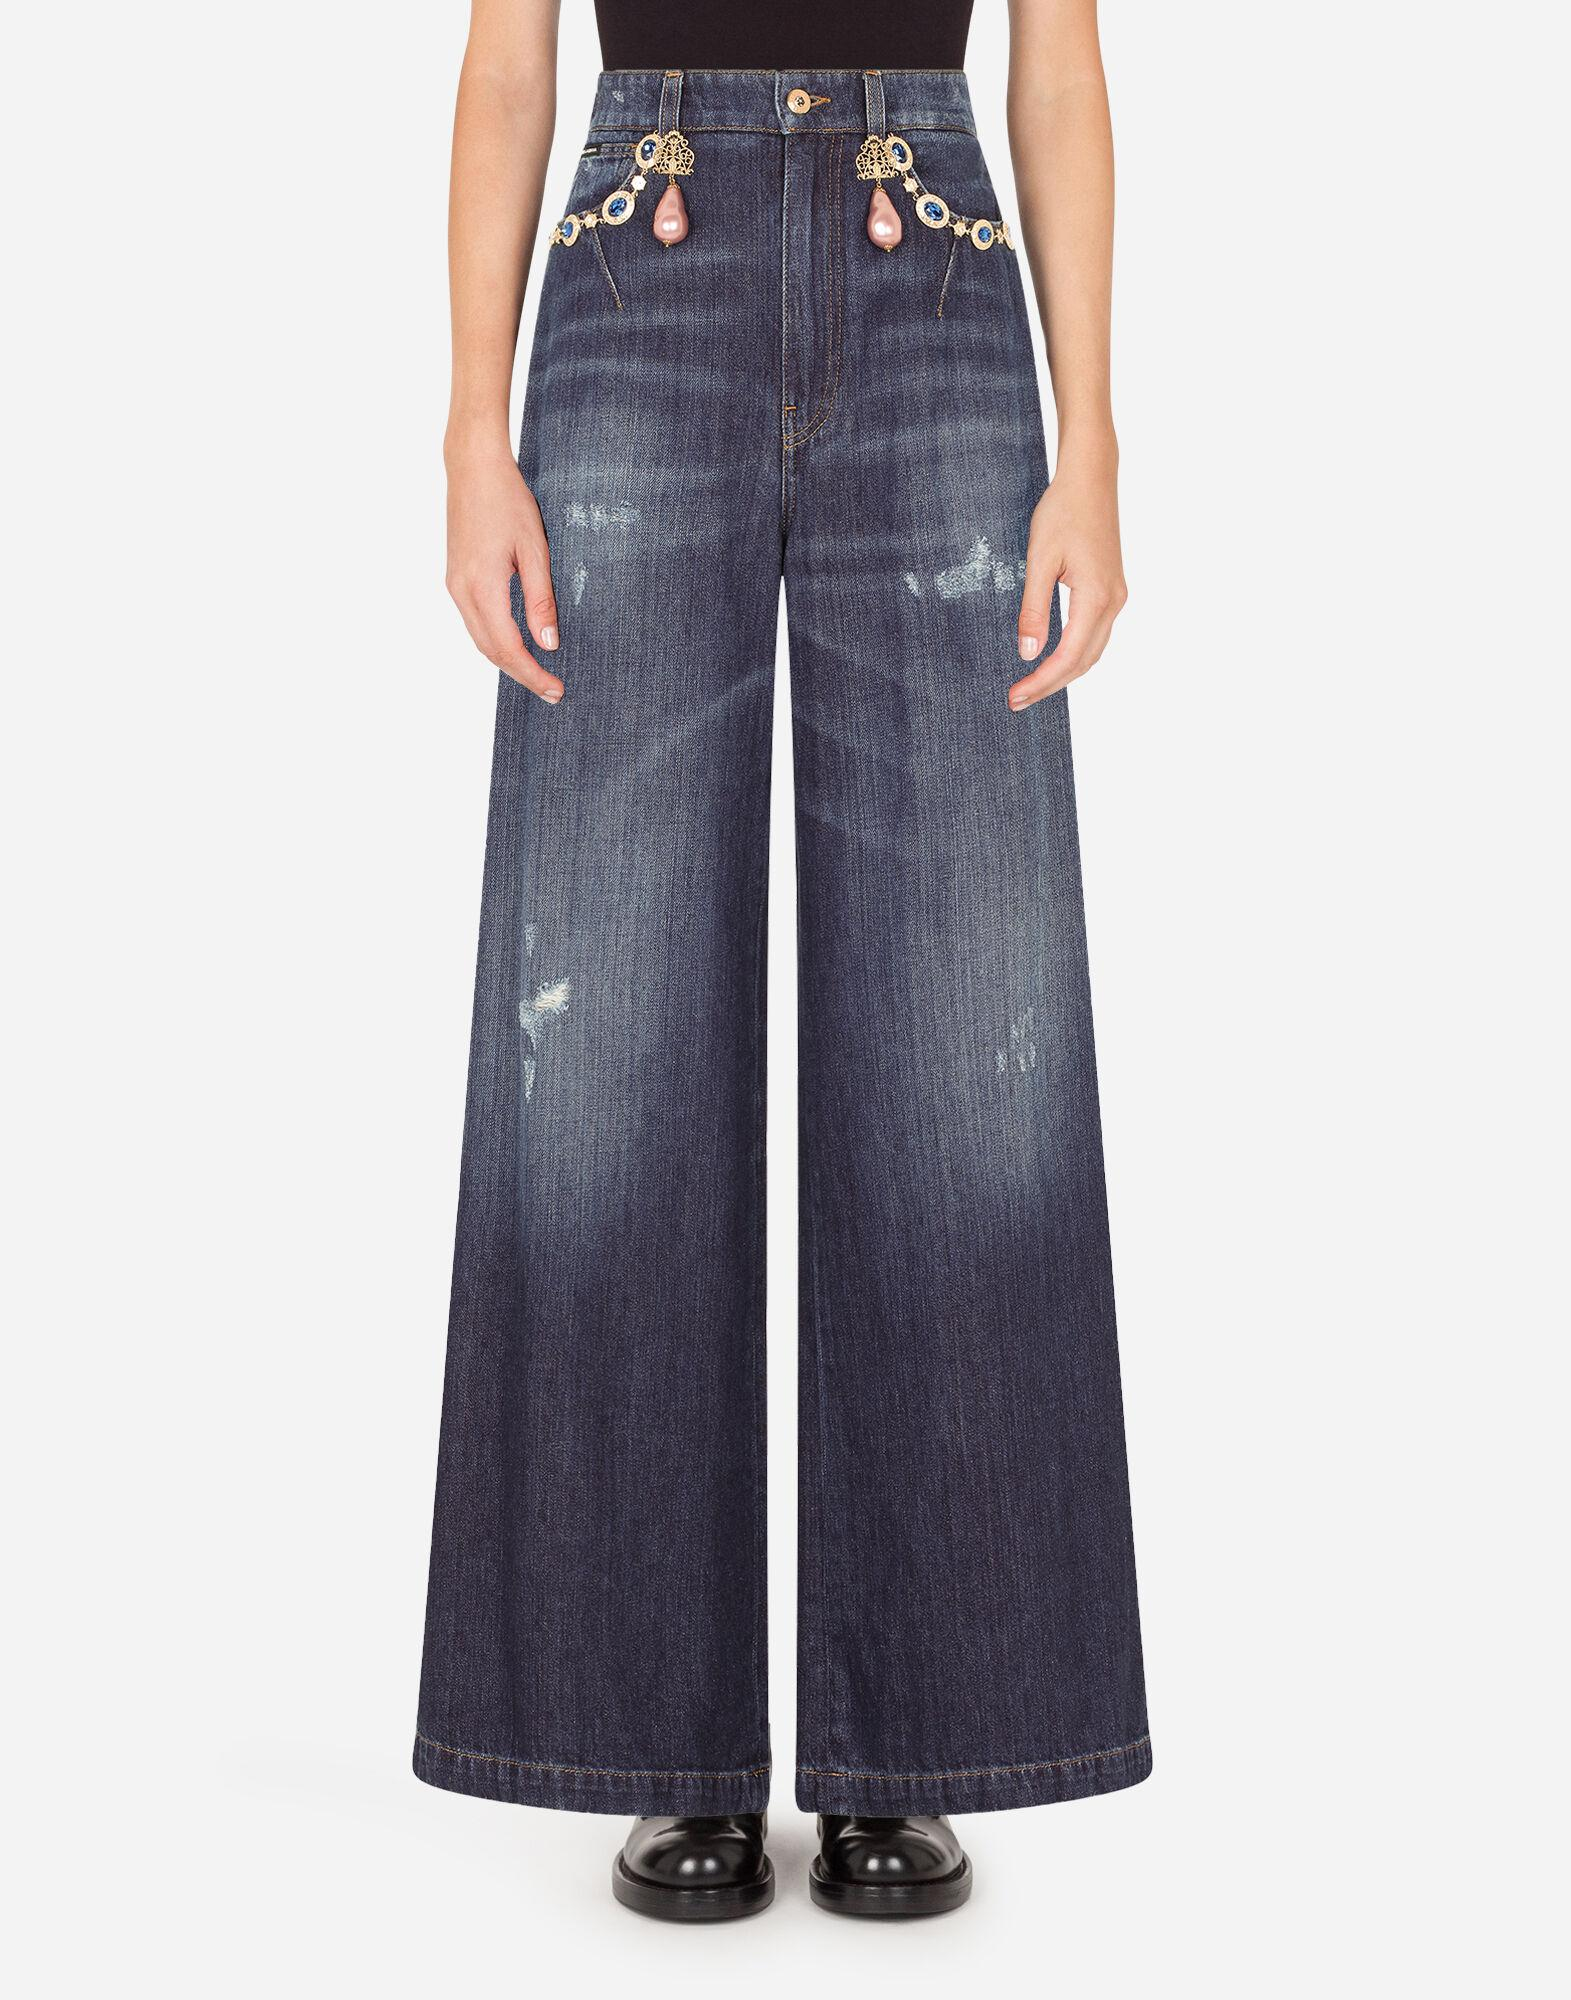 High-waisted Dolce jeans with decorative details